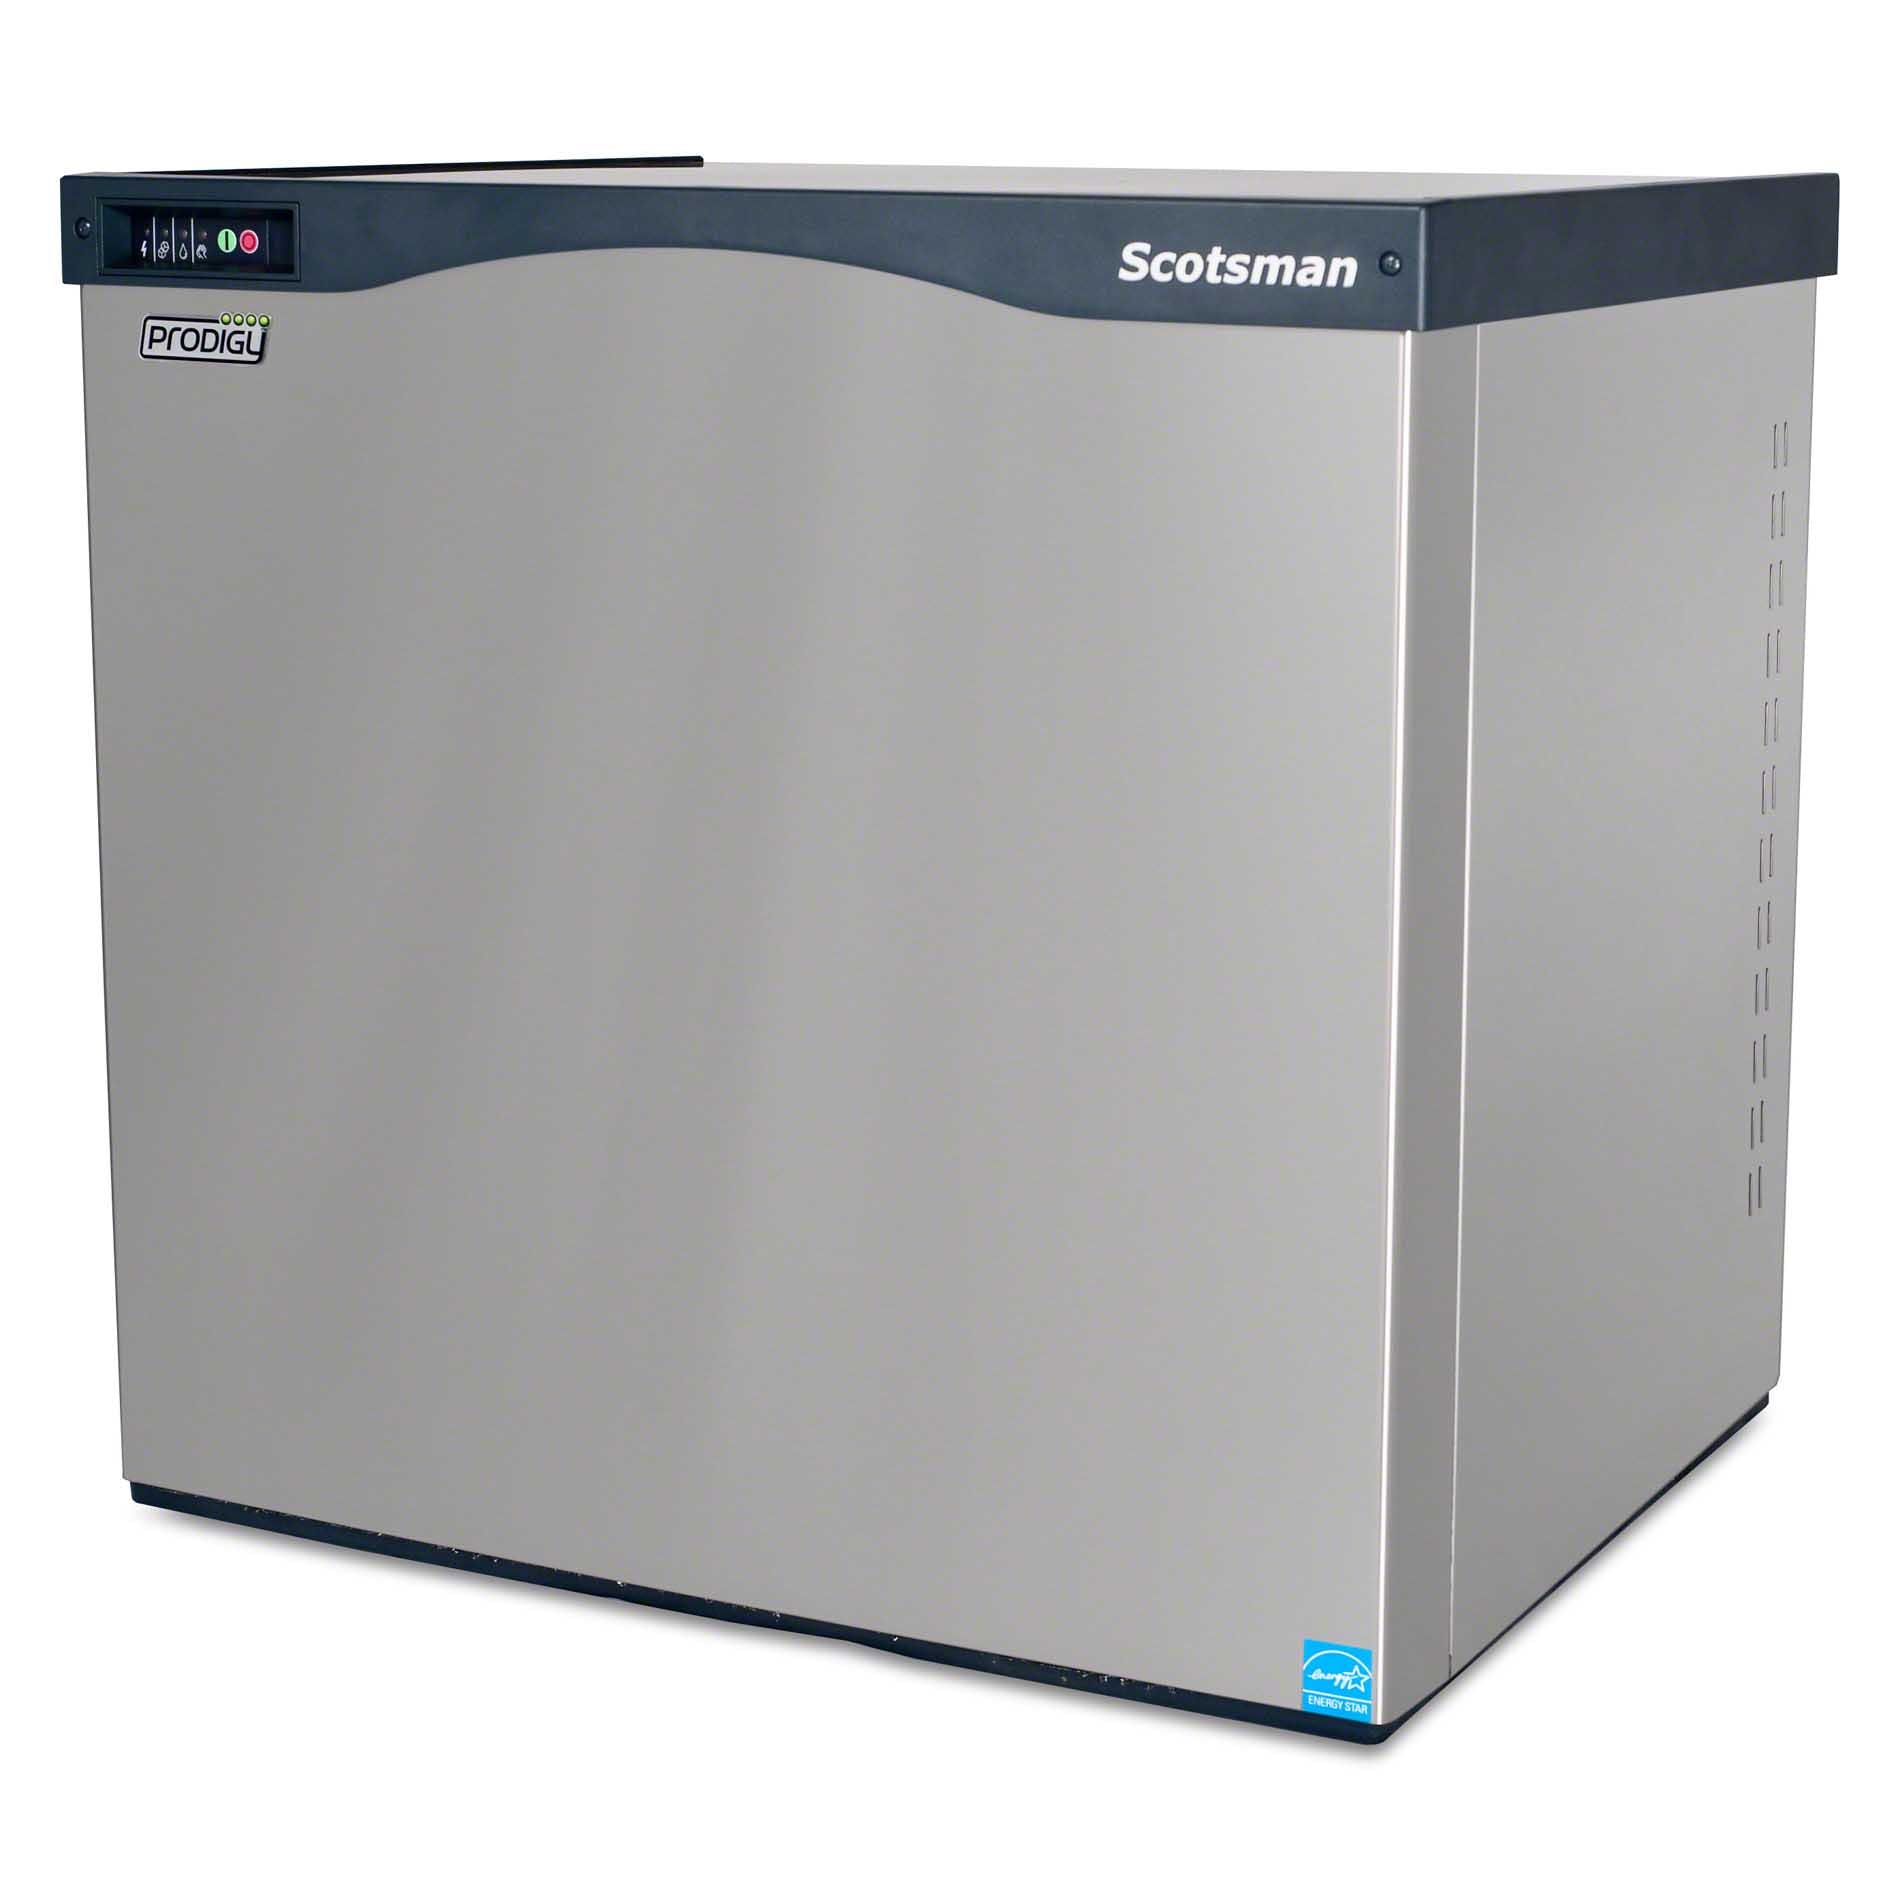 Scotsman - C0830SA-32A 905 lb Half Size Cube Ice Machine - Prodigy Series Ice machine sold by Food Service Warehouse